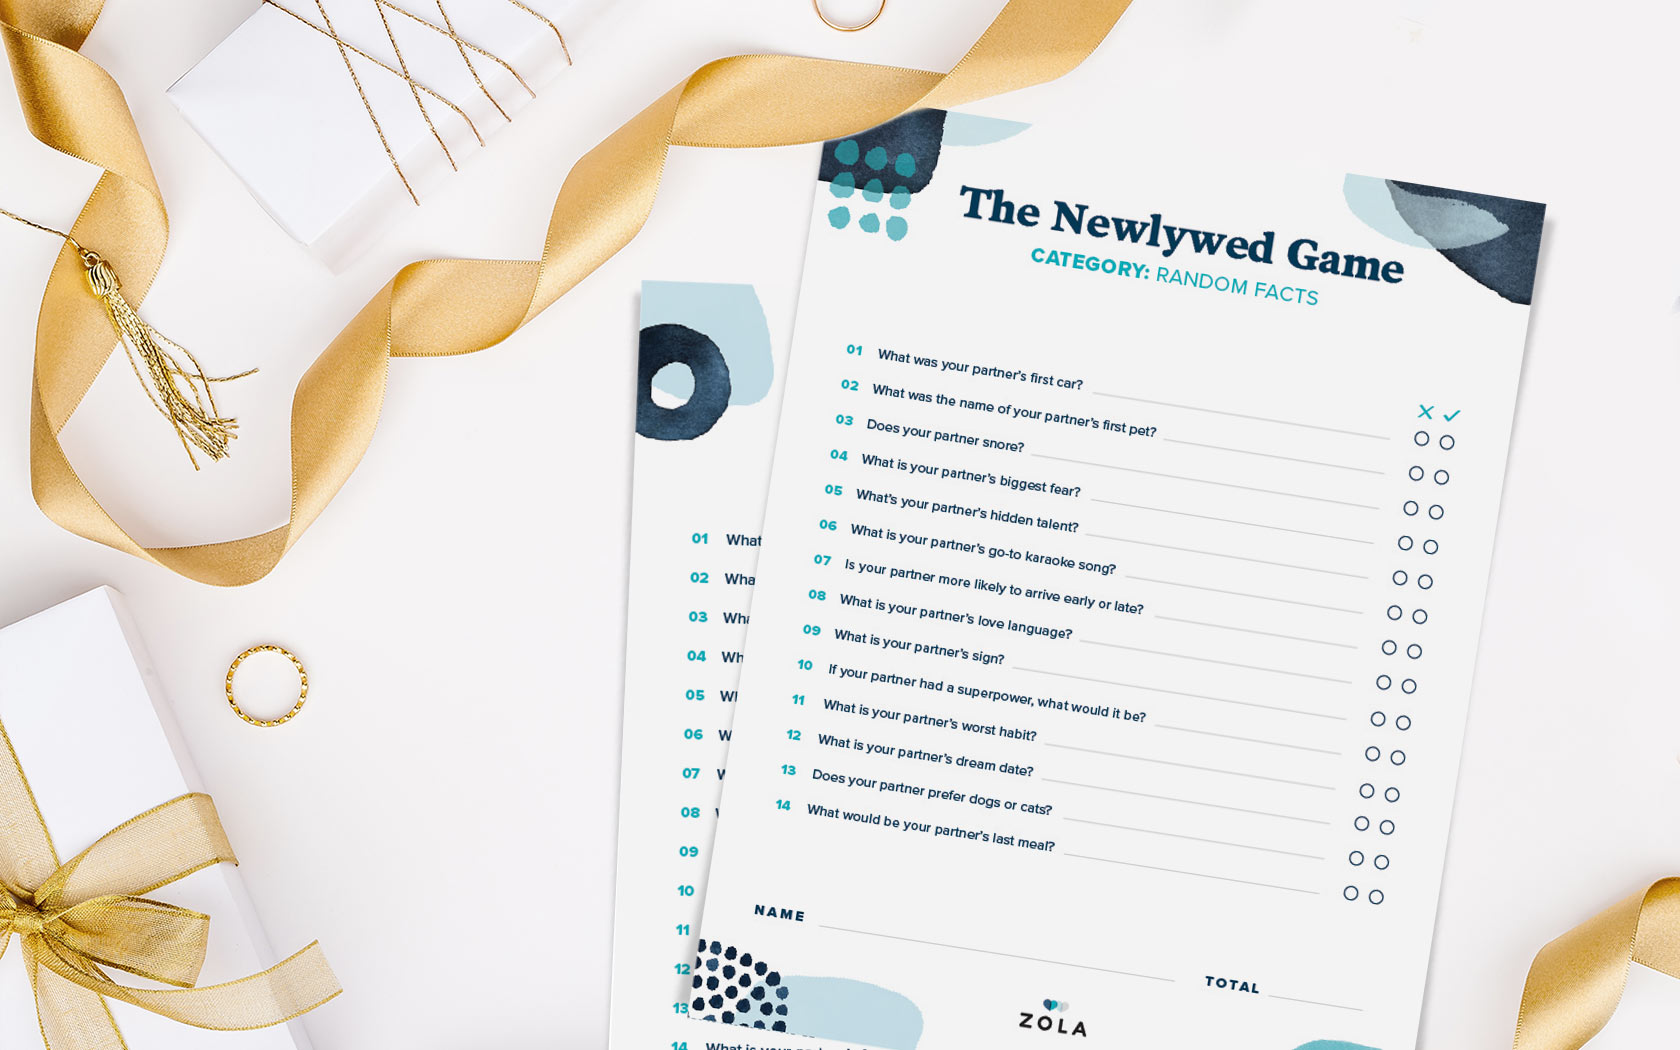 newlywed-game-mockup-randomfacts